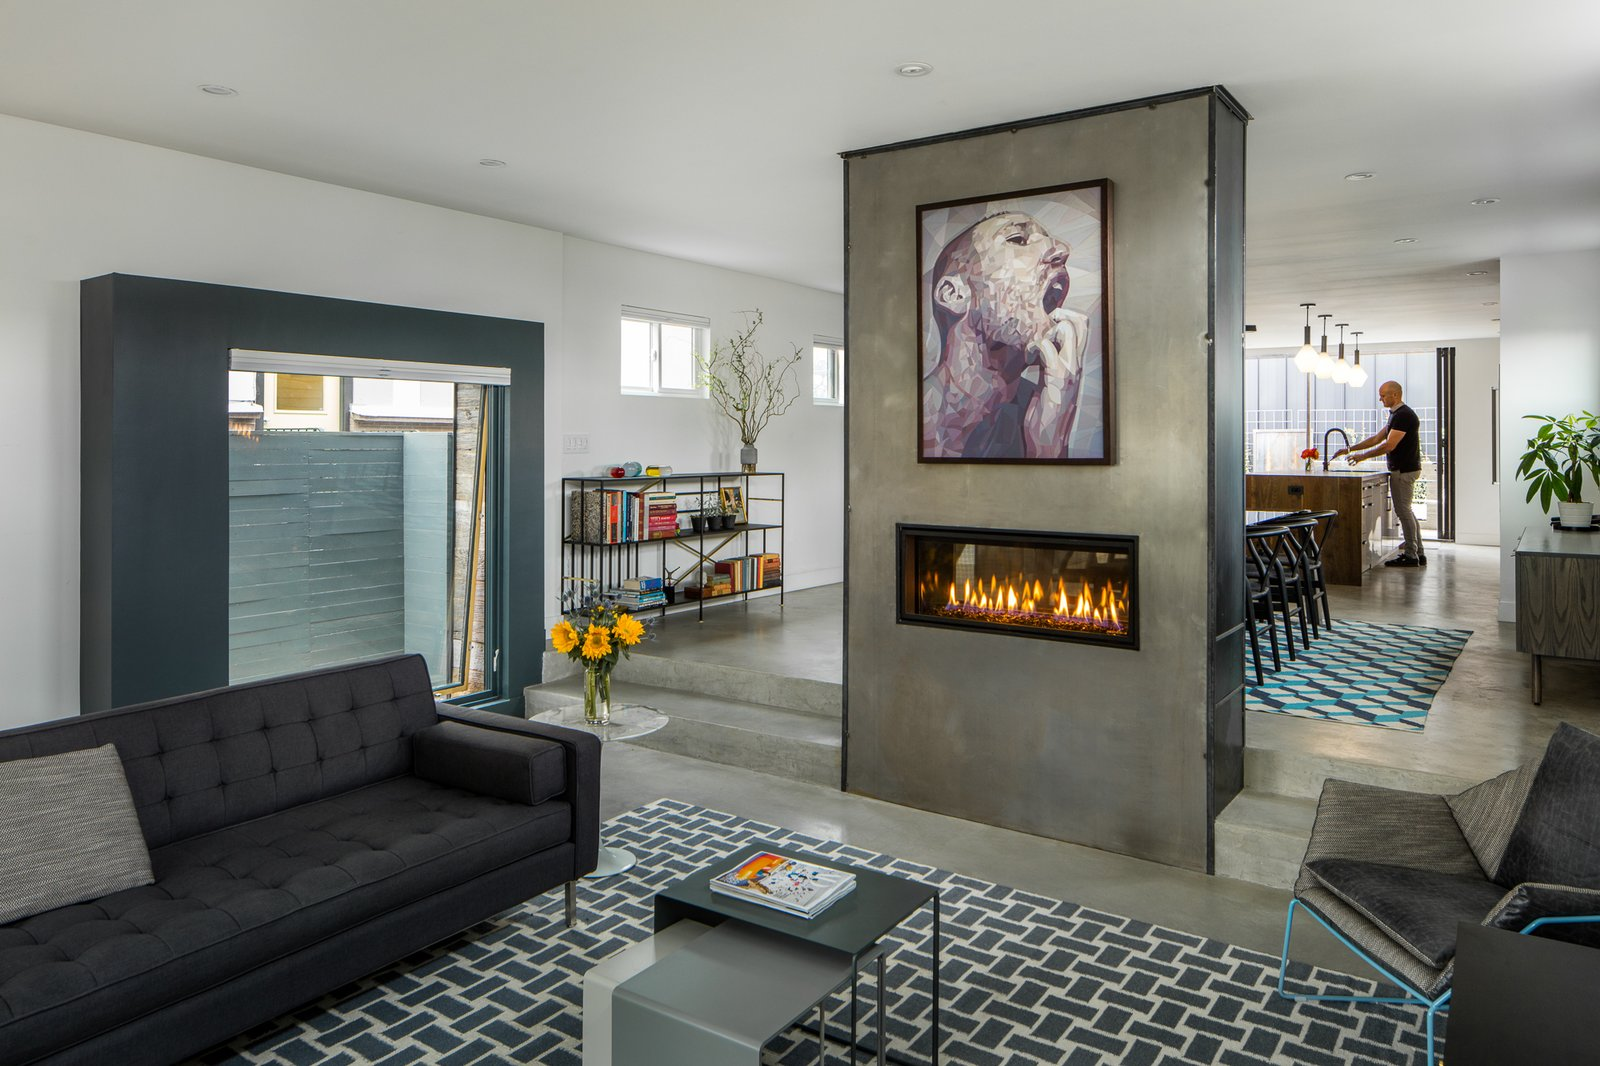 Living, Sofa, Chair, Ceiling, Concrete, and Two-Sided Sunken Living Room with See Thru Fireplace  Best Living Two-Sided Ceiling Photos from Lawrence Street Residence